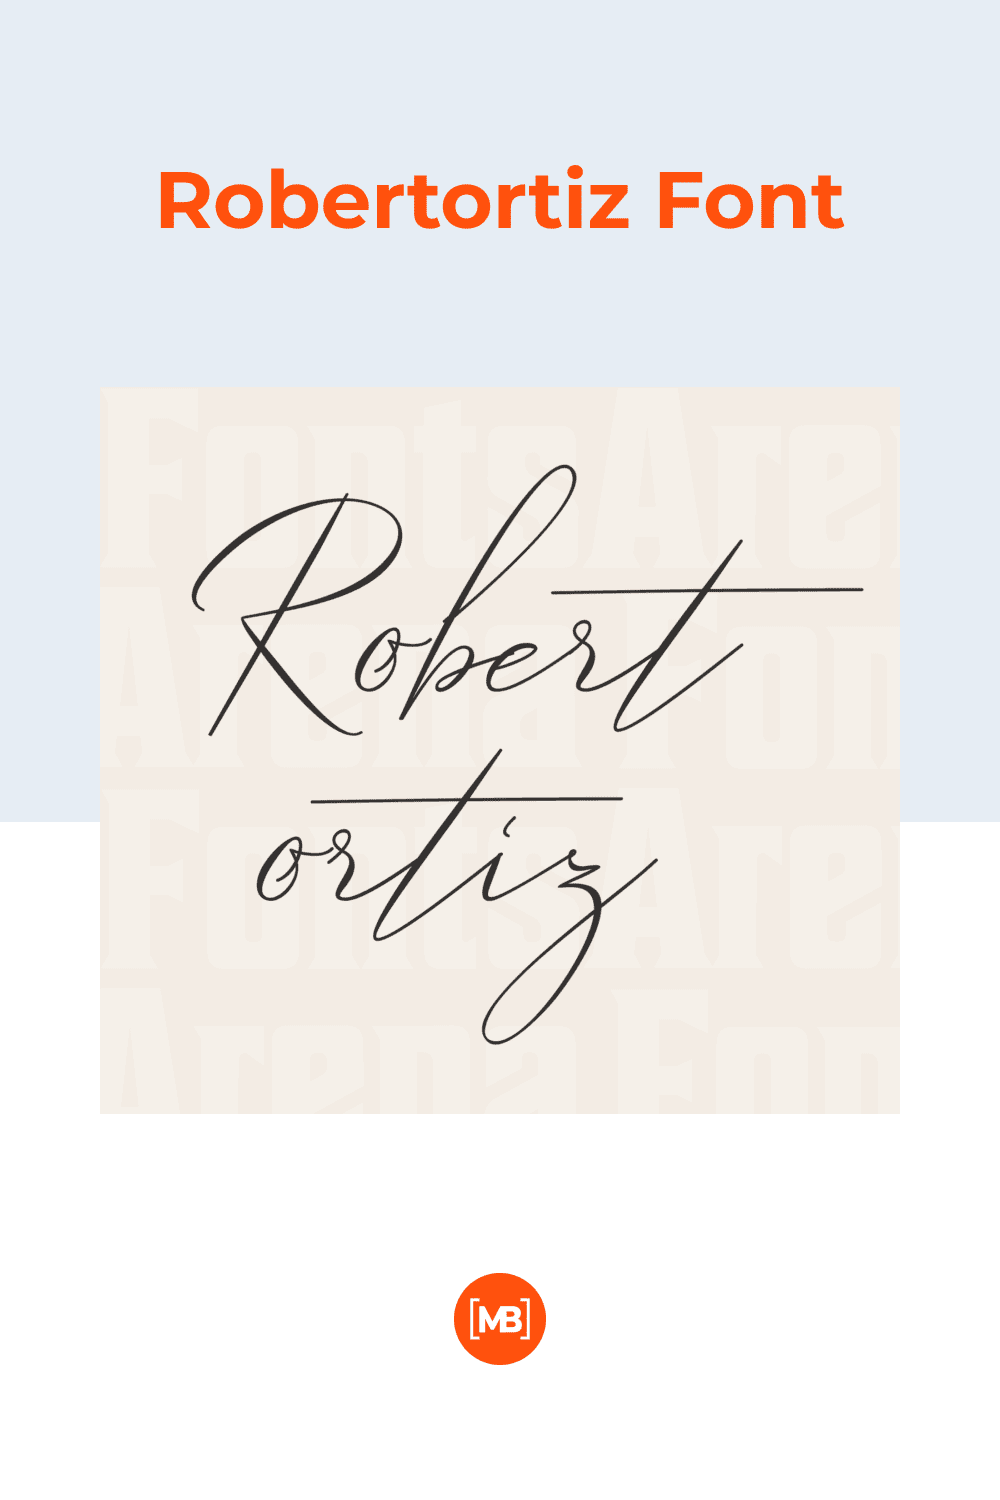 The font looks like an old signature of a significant person in history.